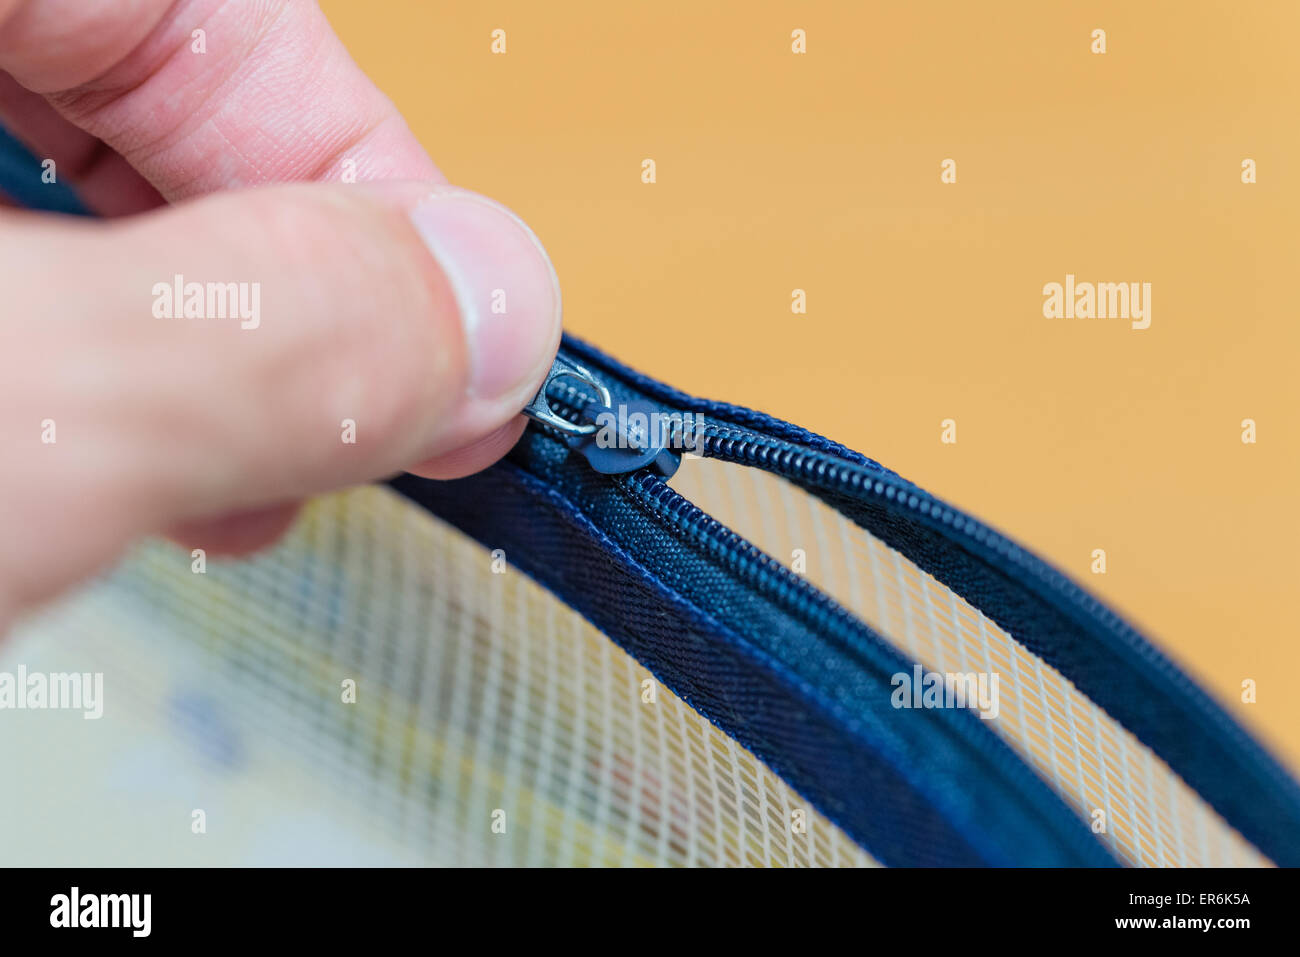 Zip Zipper Hand Hands Stock Photos & Zip Zipper Hand Hands Stock ...